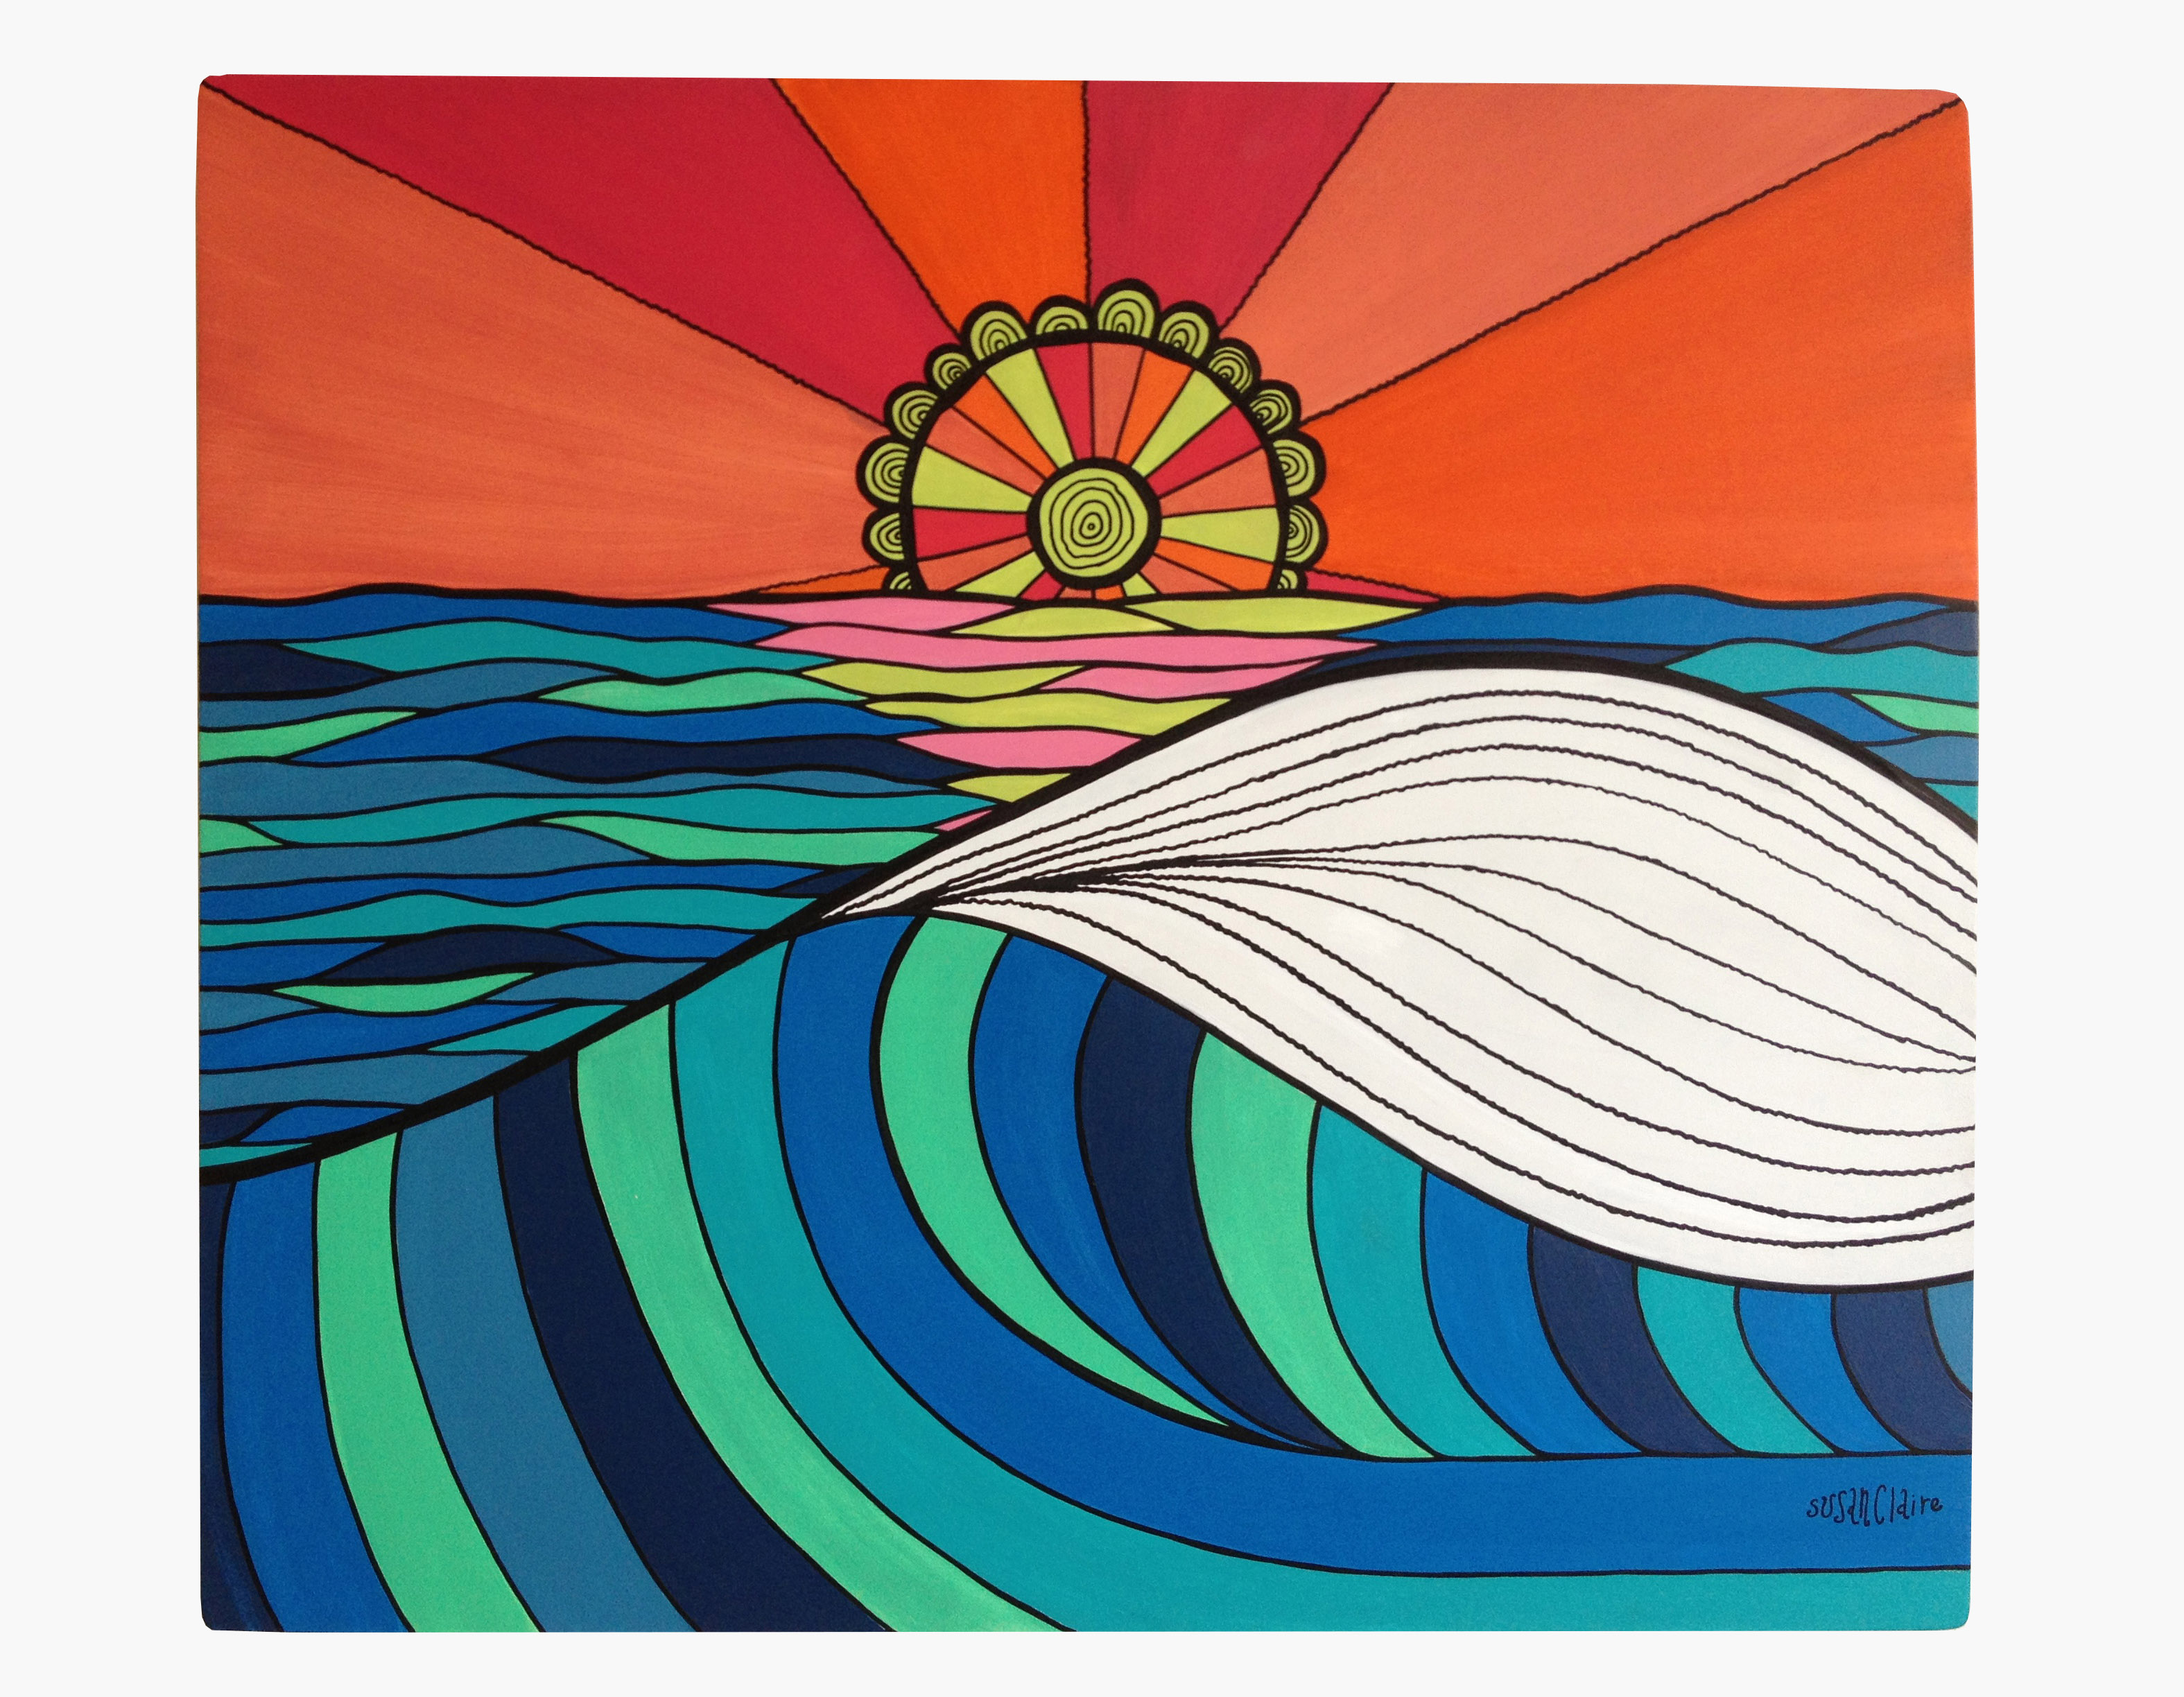 3150x2448 Ocean Draw Surf Art By Susan Claire From The Latest